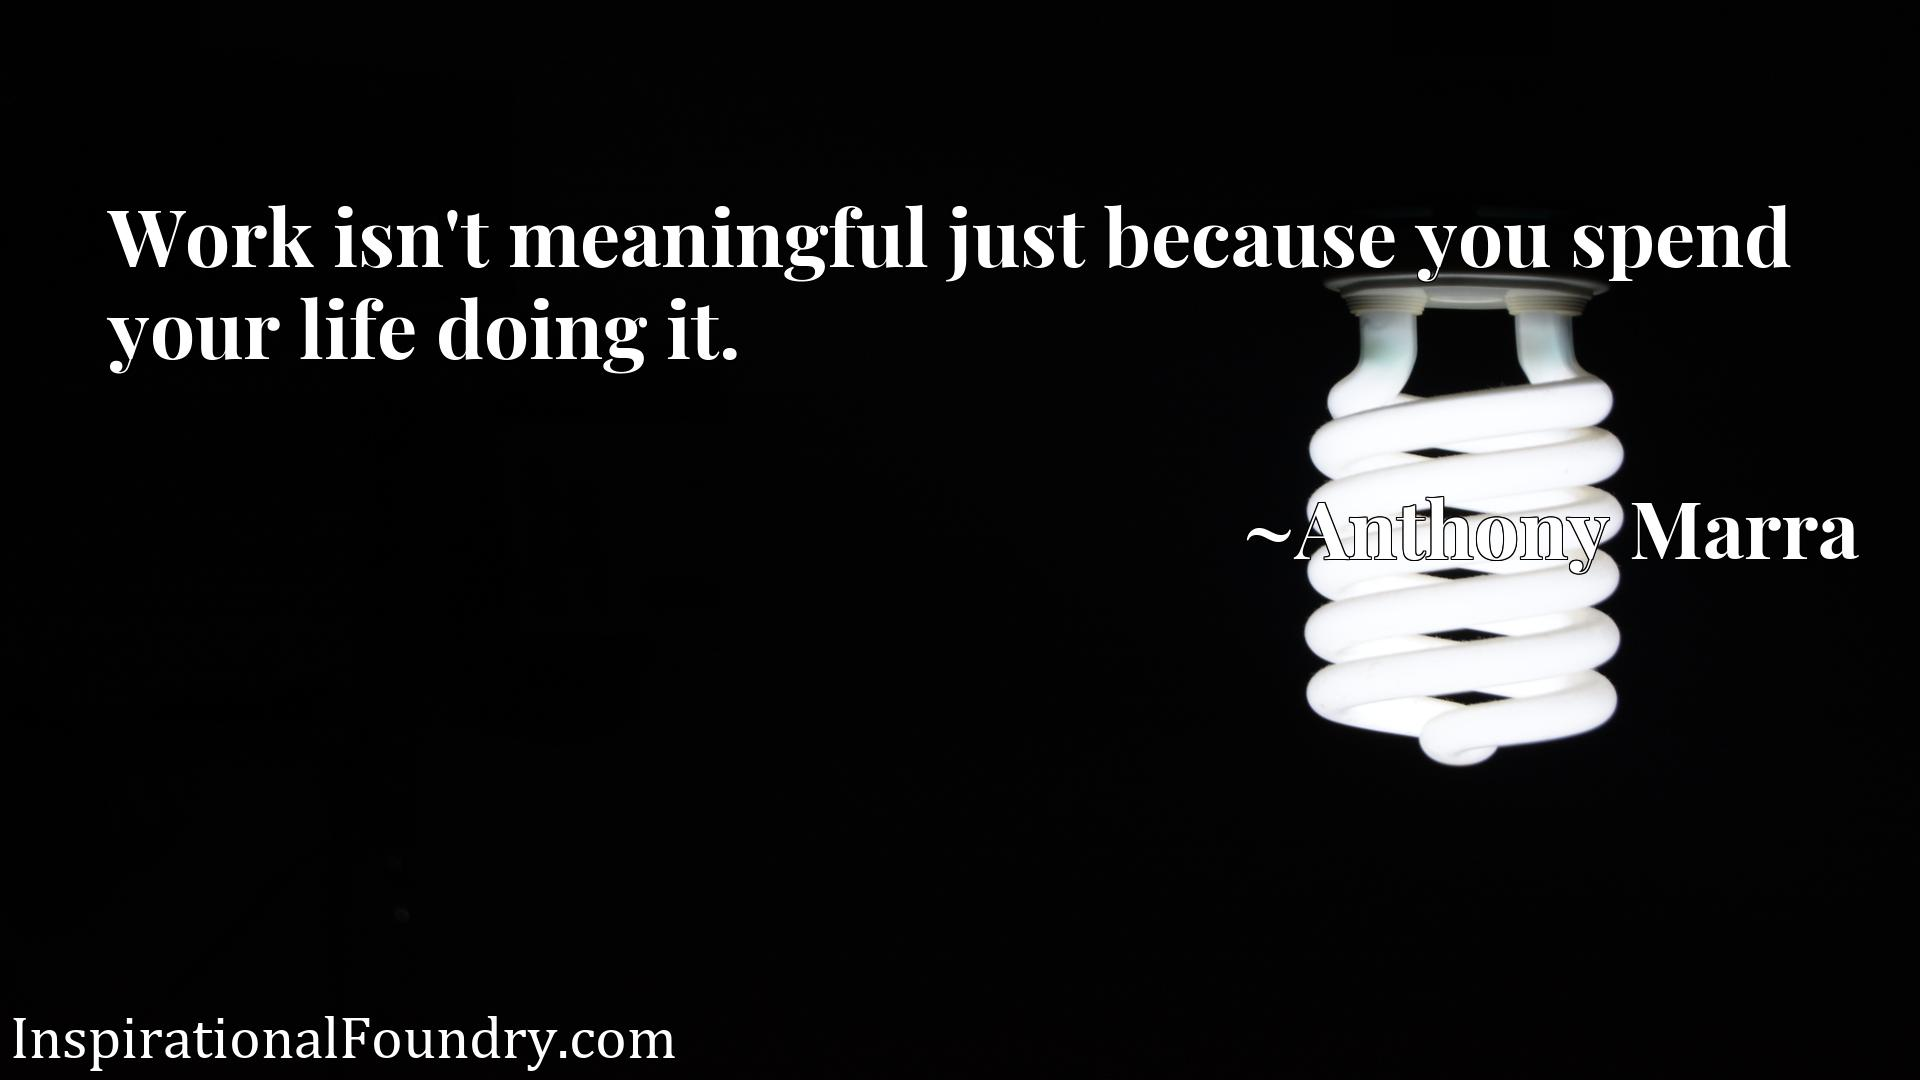 Work isn't meaningful just because you spend your life doing it.